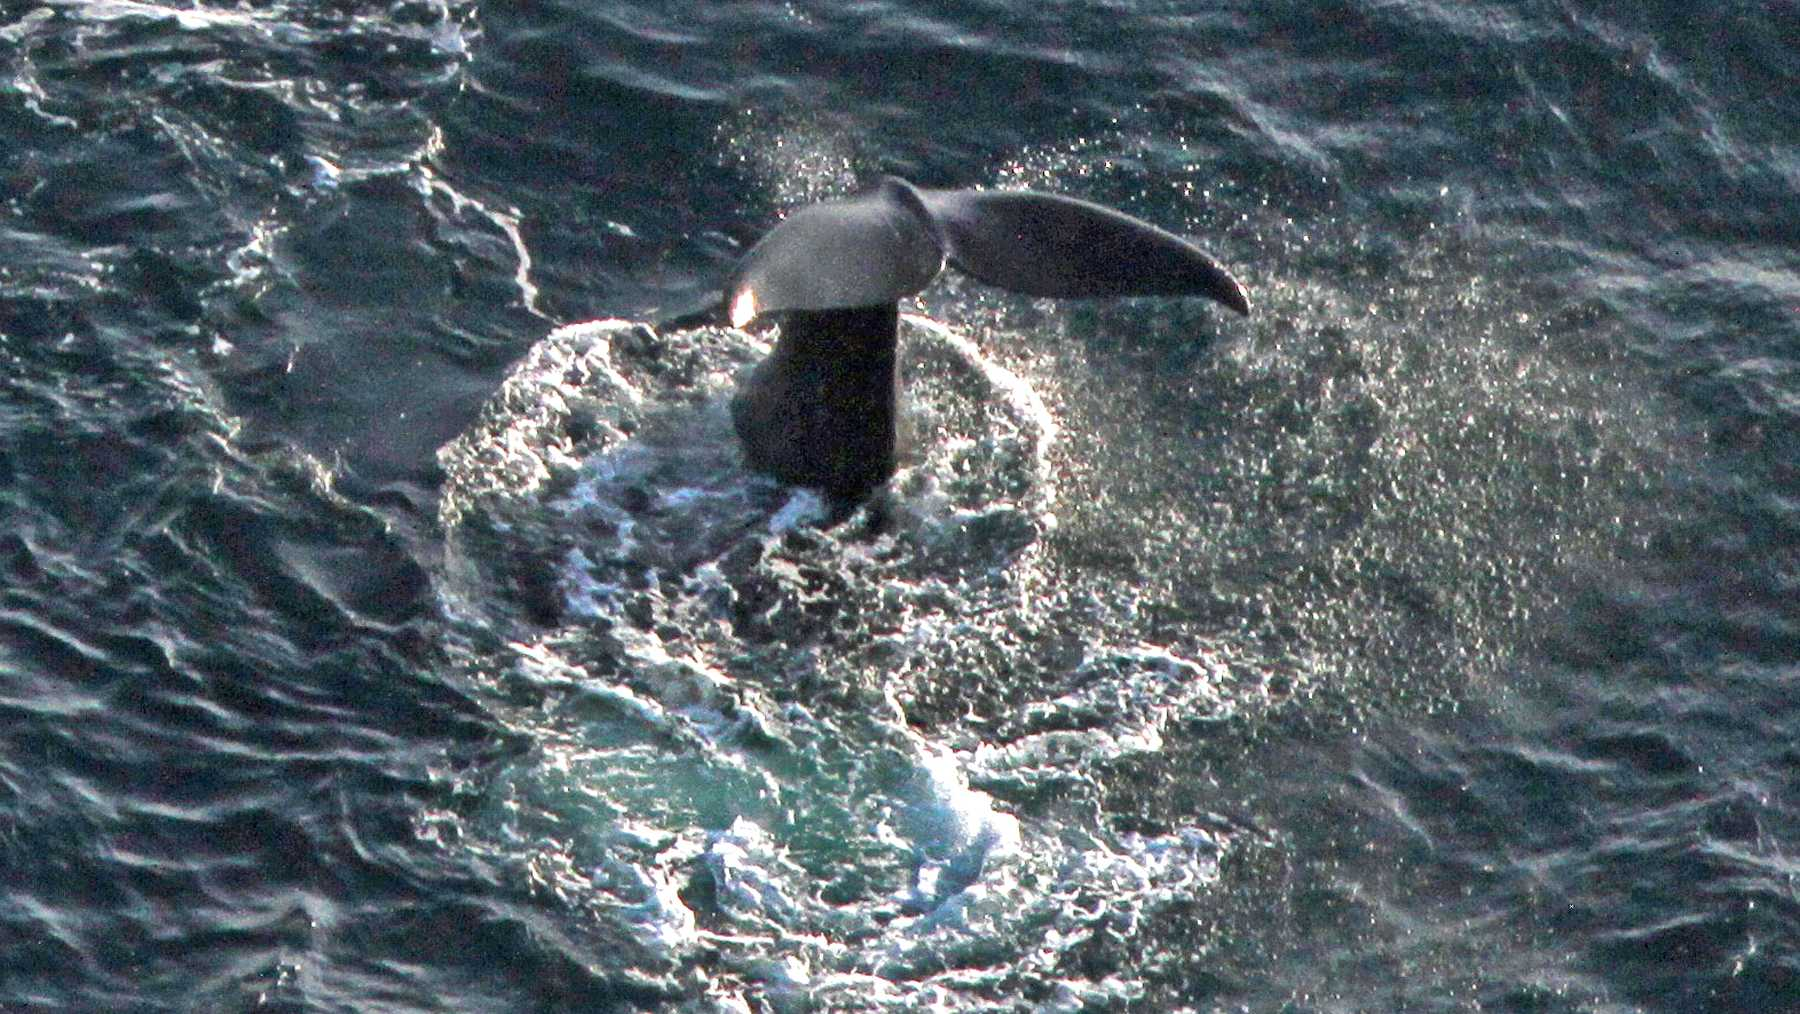 Right whale baby tale slap